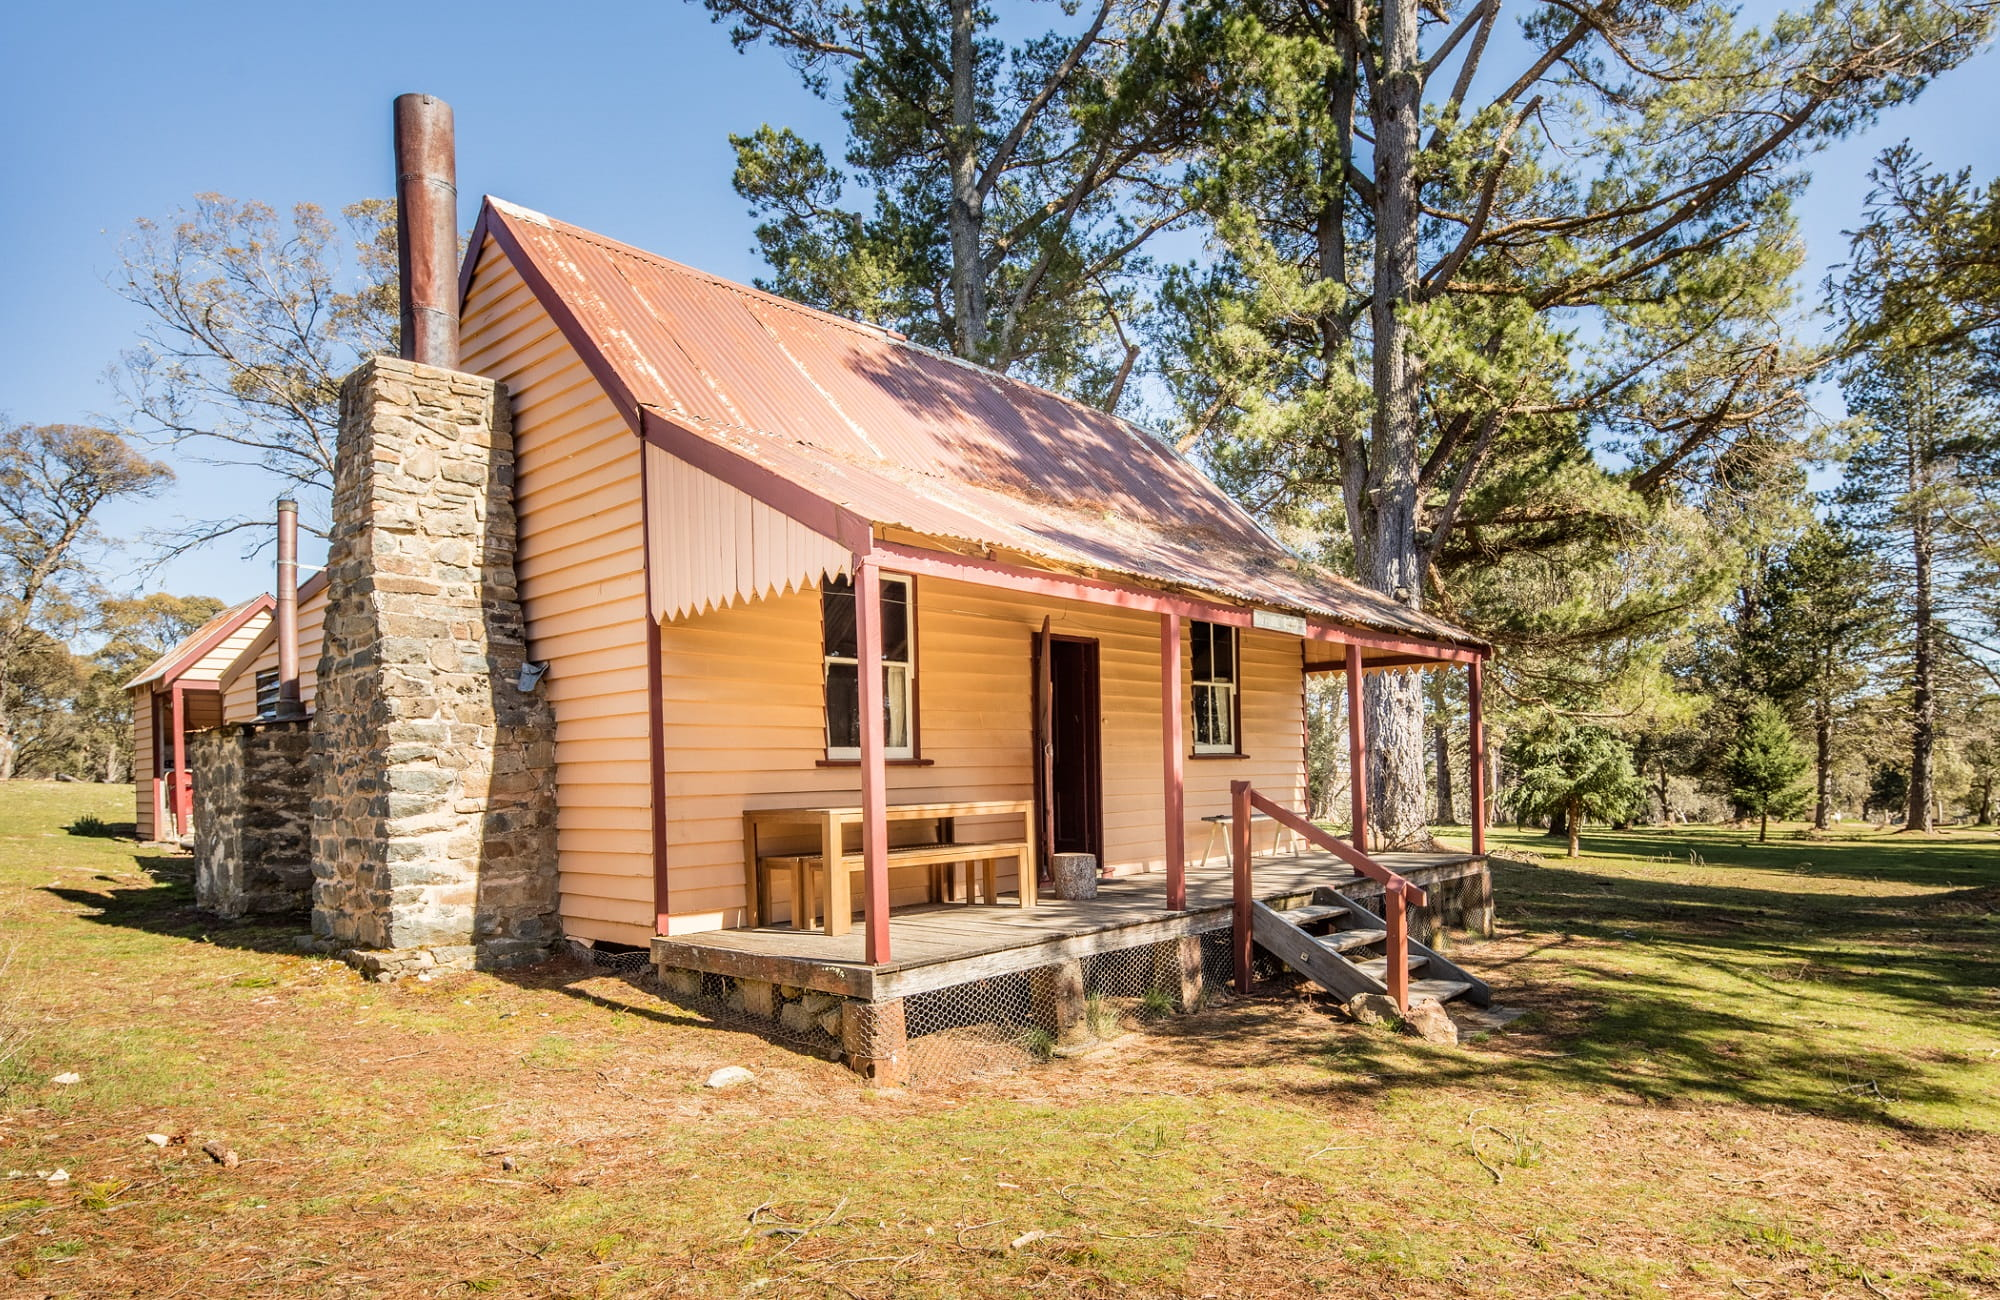 Exterior of Daffodil Cottage, Kosciuszko National Park. Photo: Murray Vanderveer/OEH